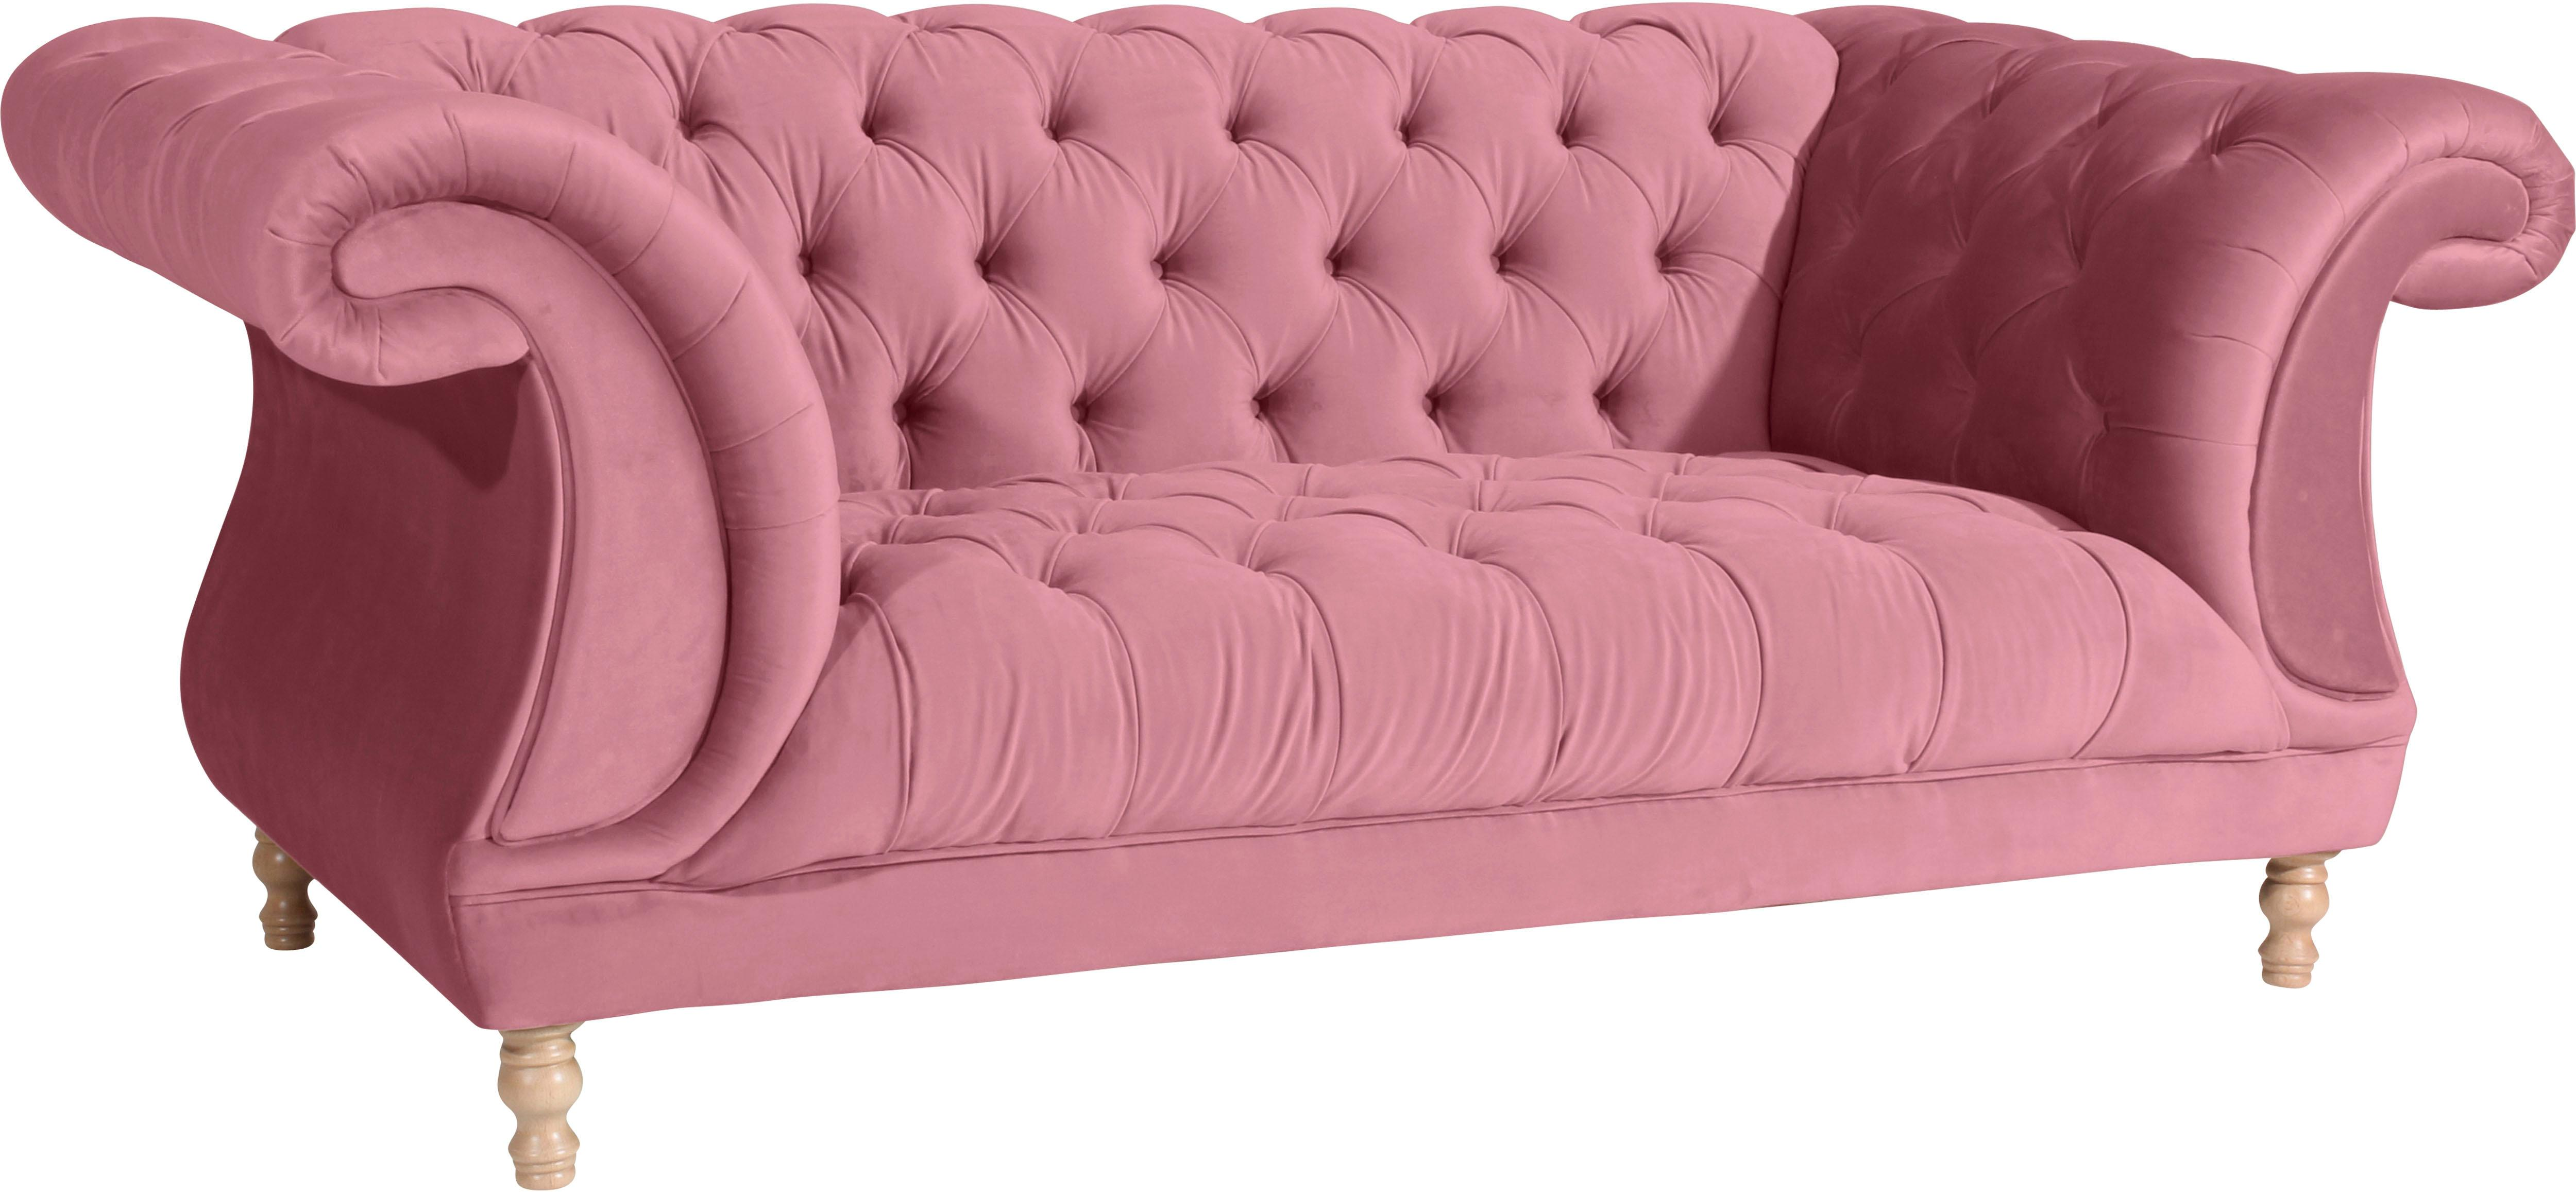 rosa stoff chesterfield sofas online kaufen m bel suchmaschine. Black Bedroom Furniture Sets. Home Design Ideas